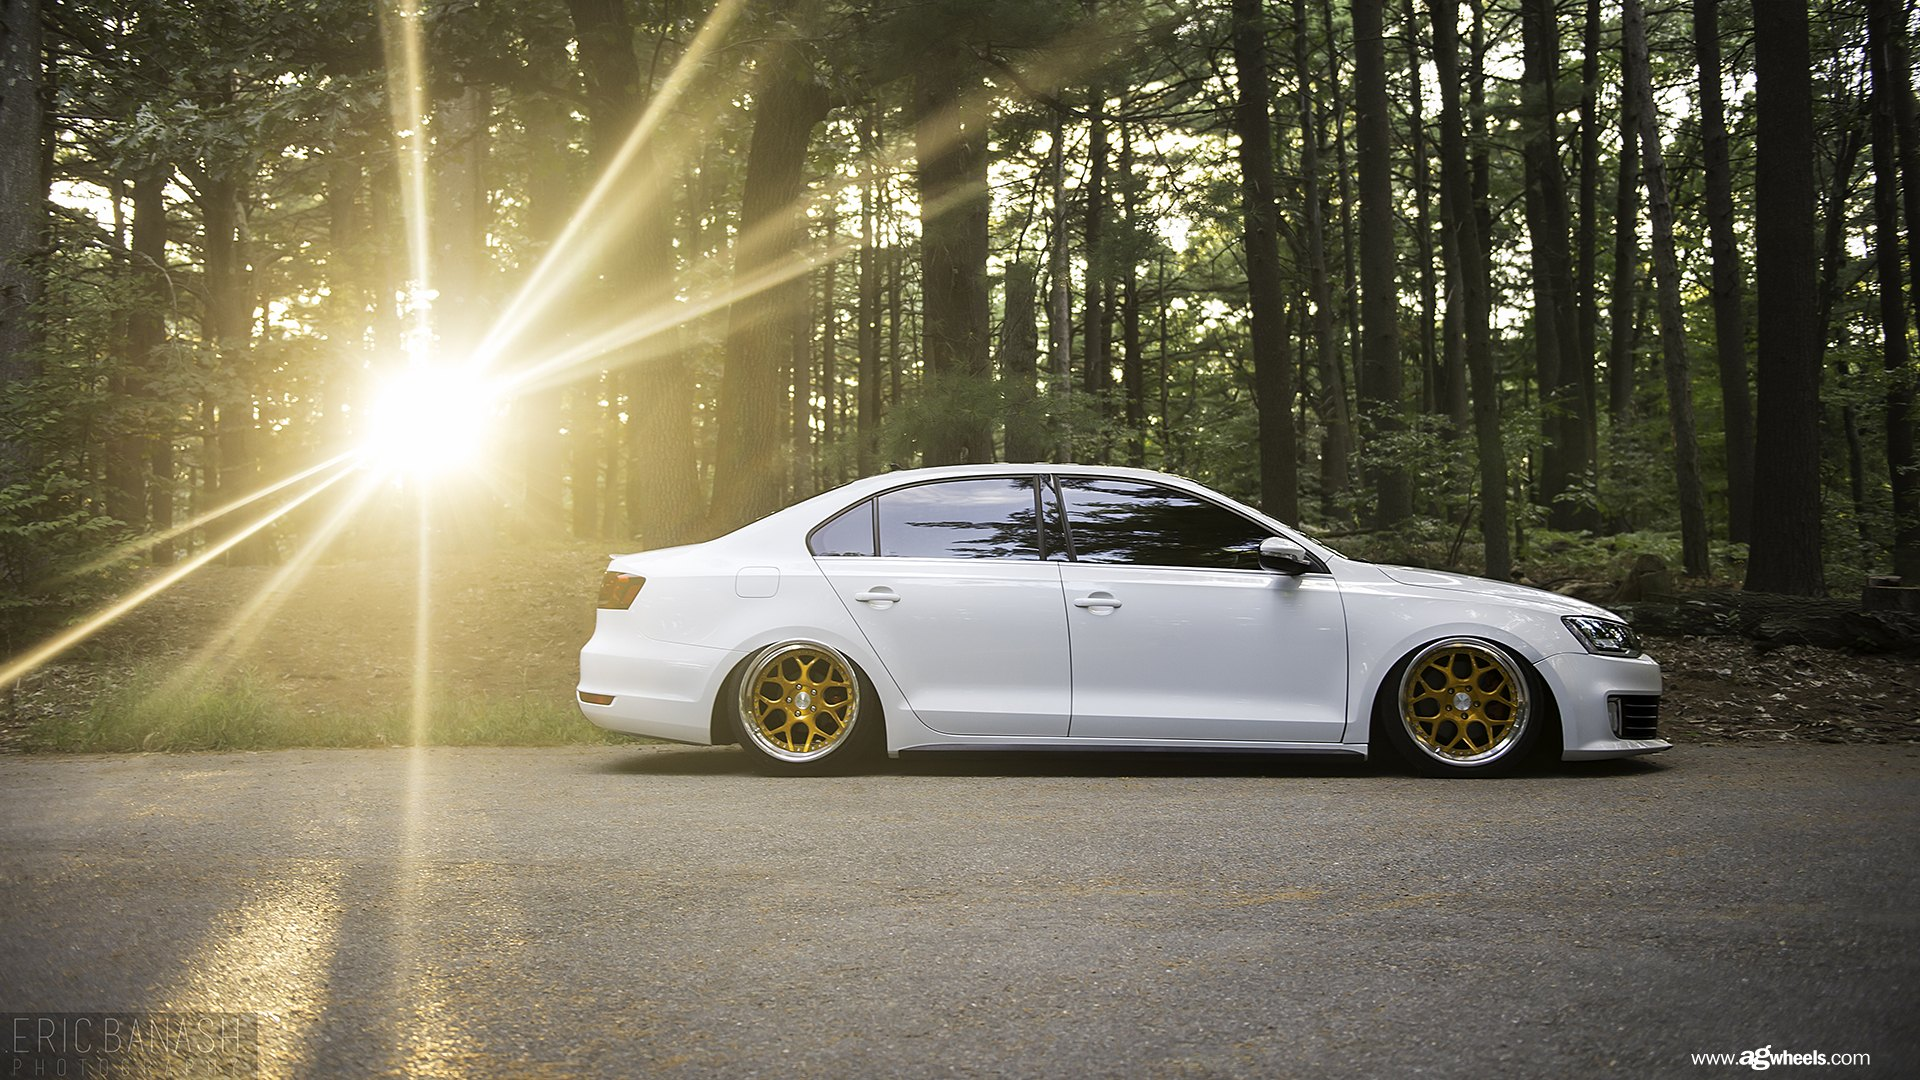 White Vw Jetta Rocking A Set Of Gold Avant Garde Wheels